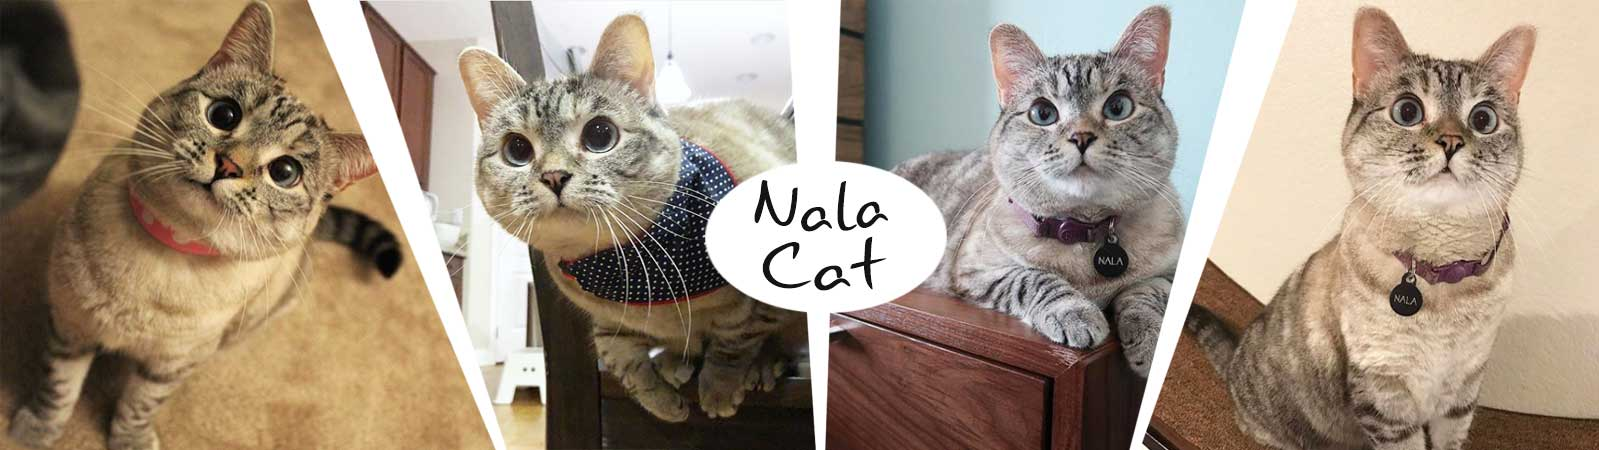 Nala Cat Pillows